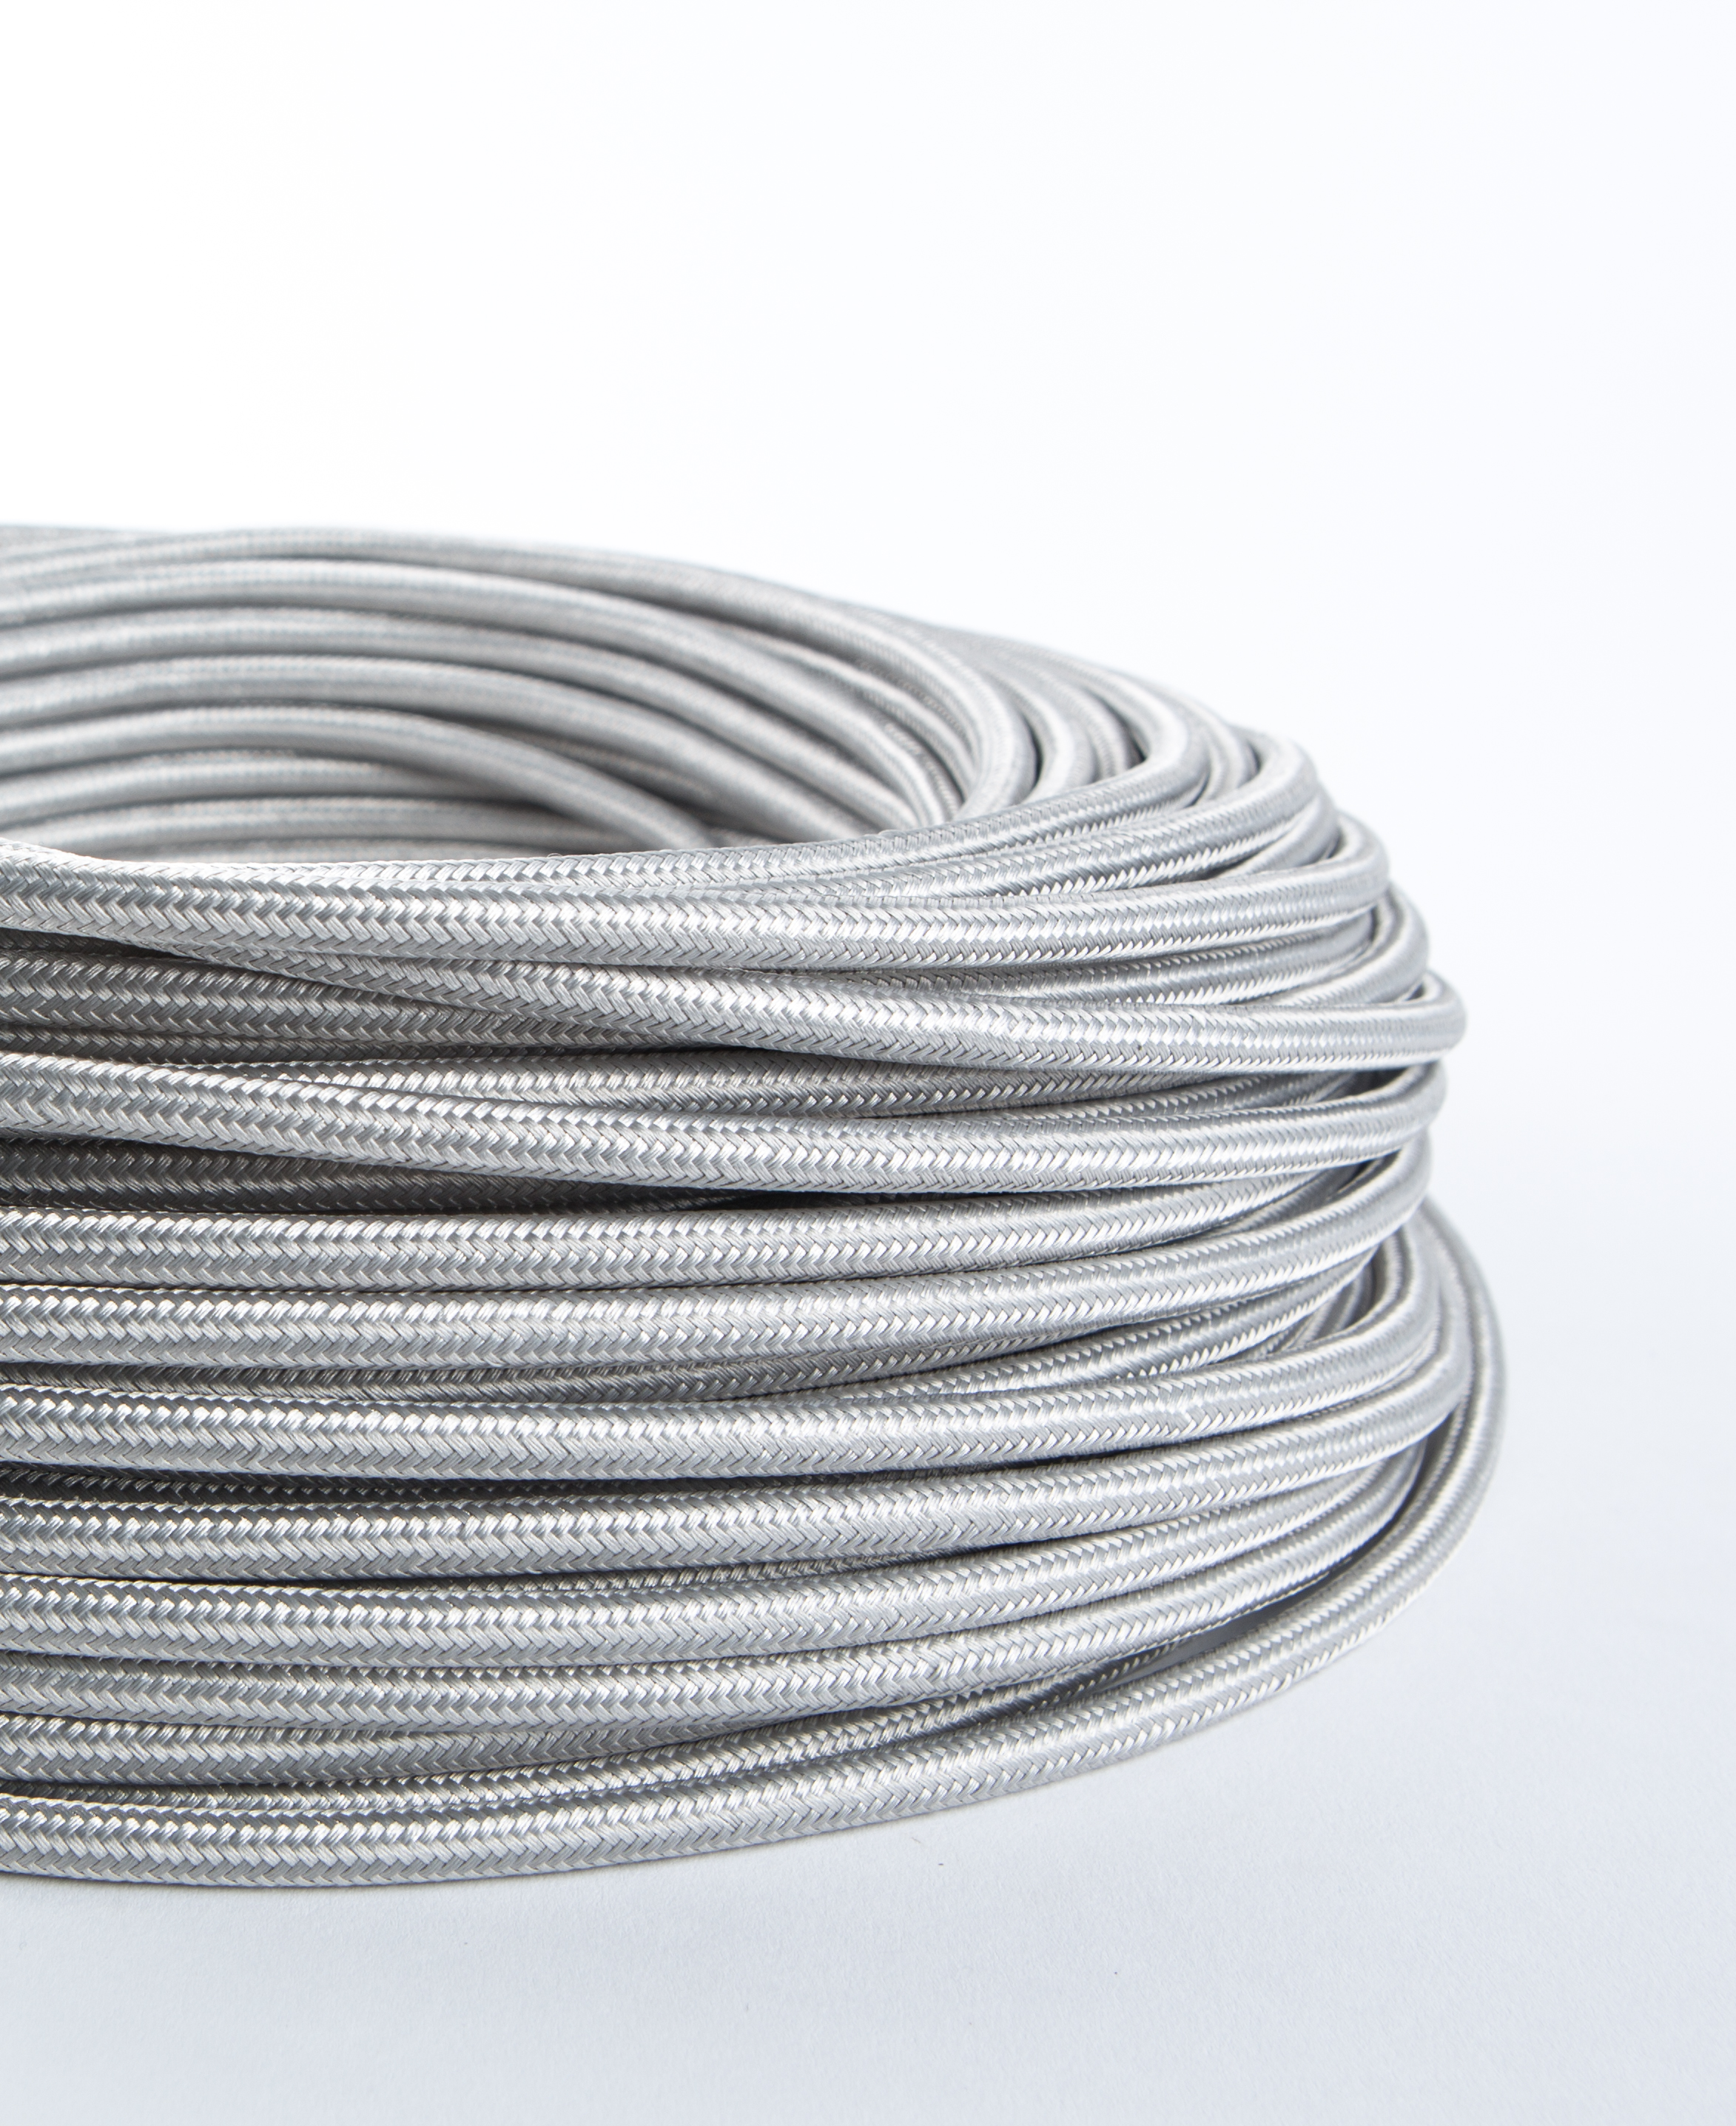 Silver Fabric Cable for Lighting with Smooth Satin Sheen: 8 Amp 3 Core